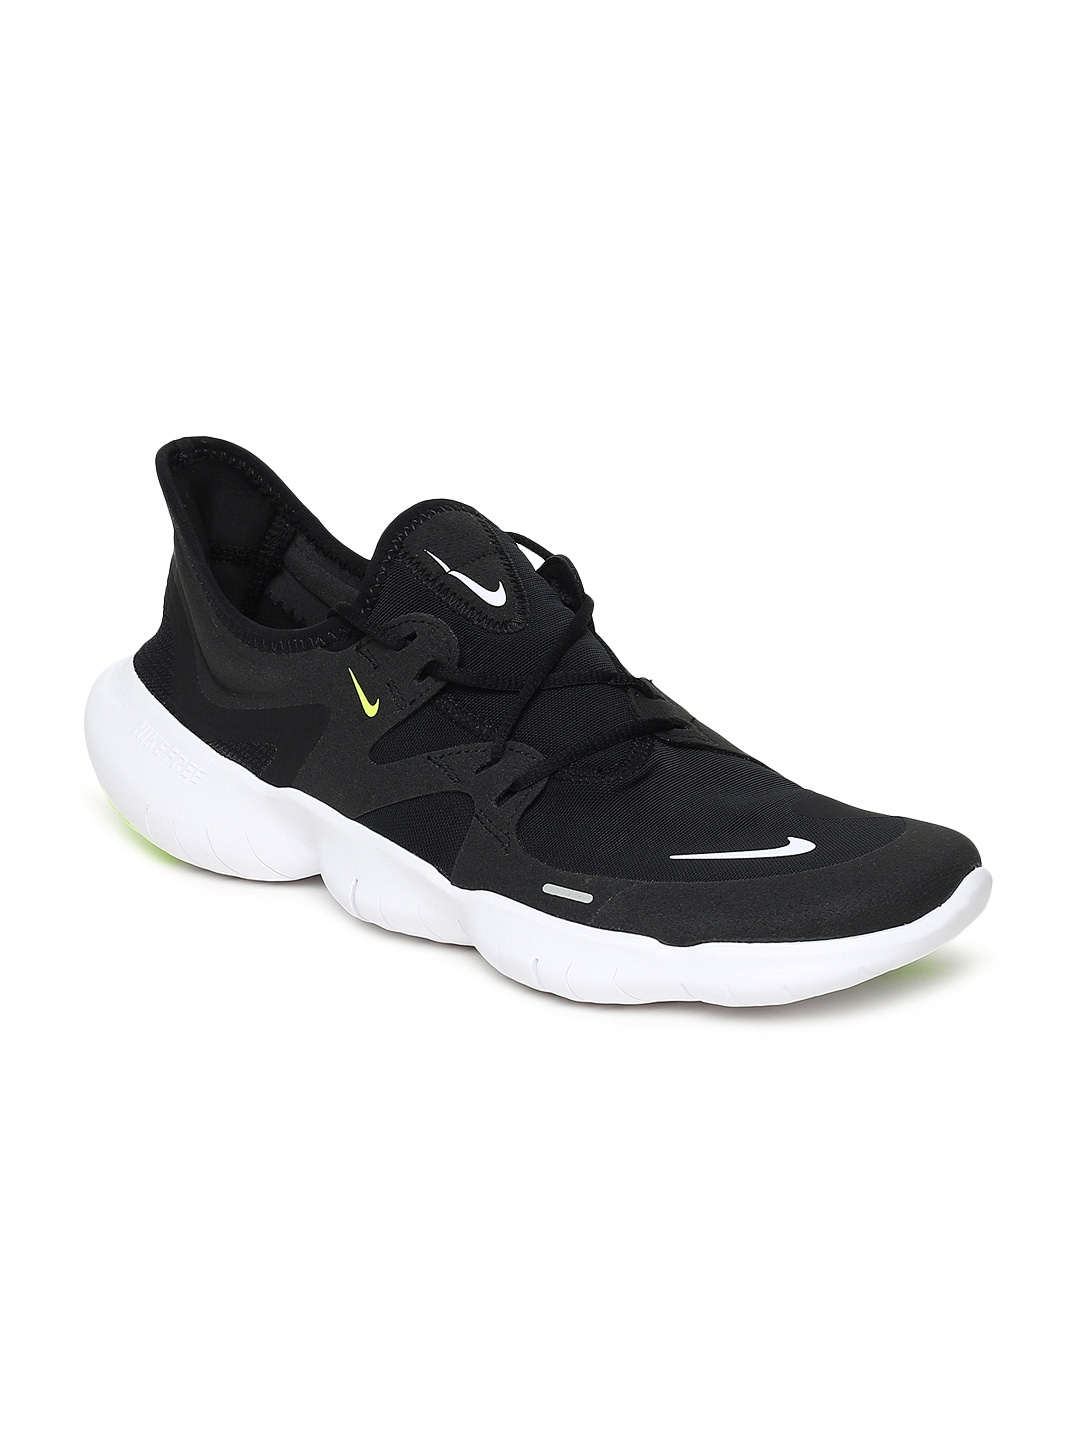 48d1ec2d672d Nike Black Shoes - Buy Nike Black Shoes Online in India